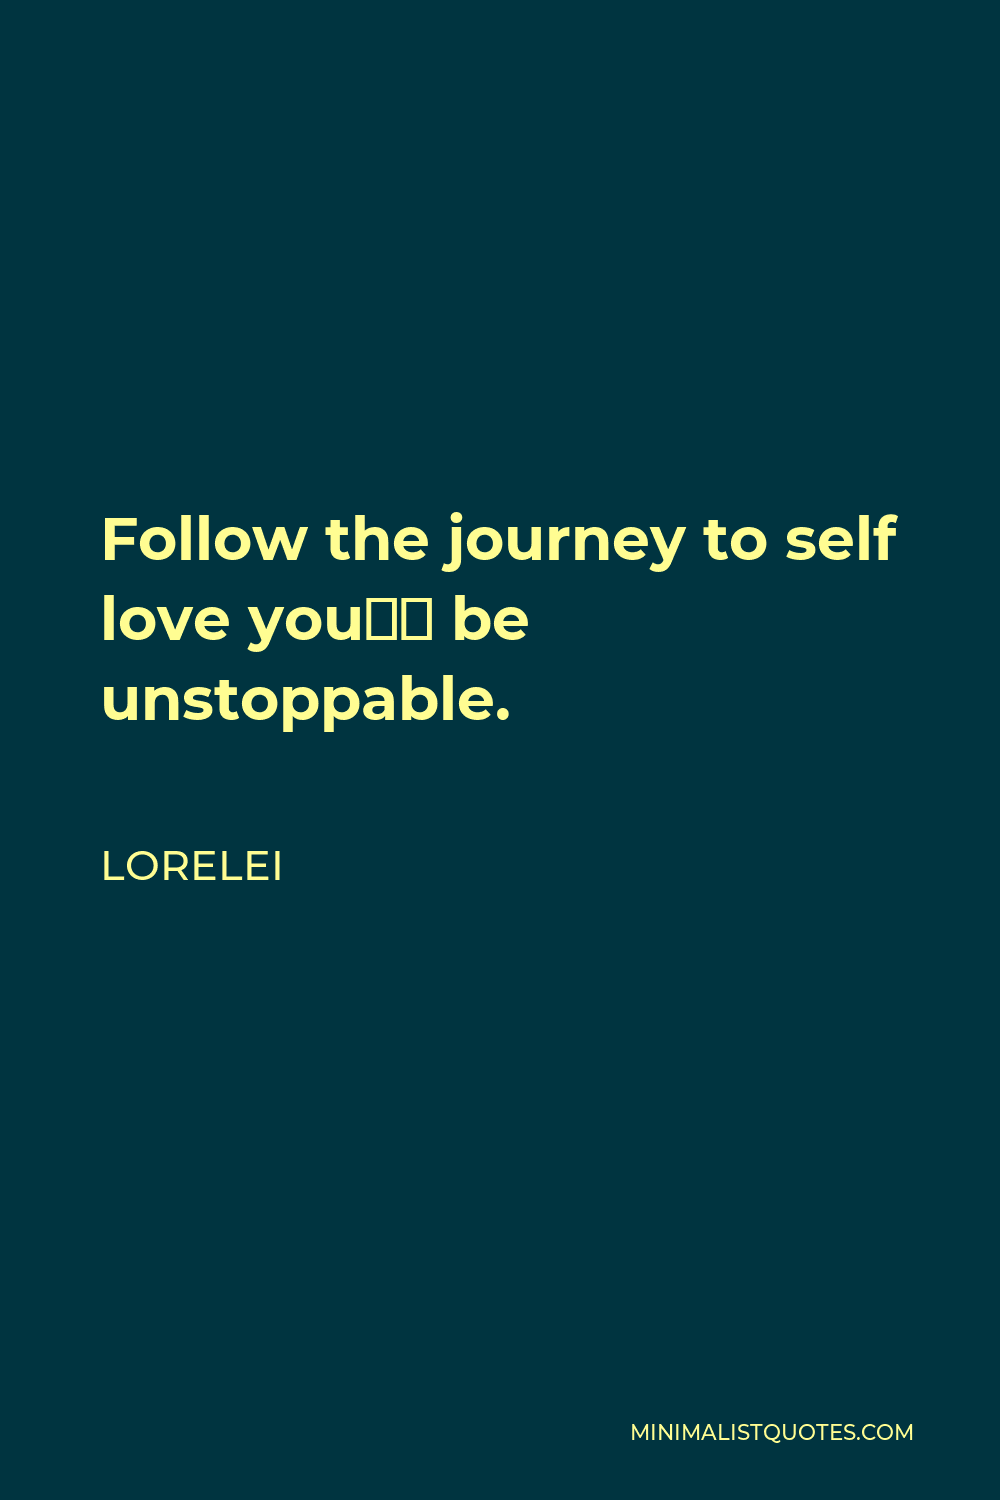 Lorelei Quote - Follow the journey to self love you'd be unstoppable.